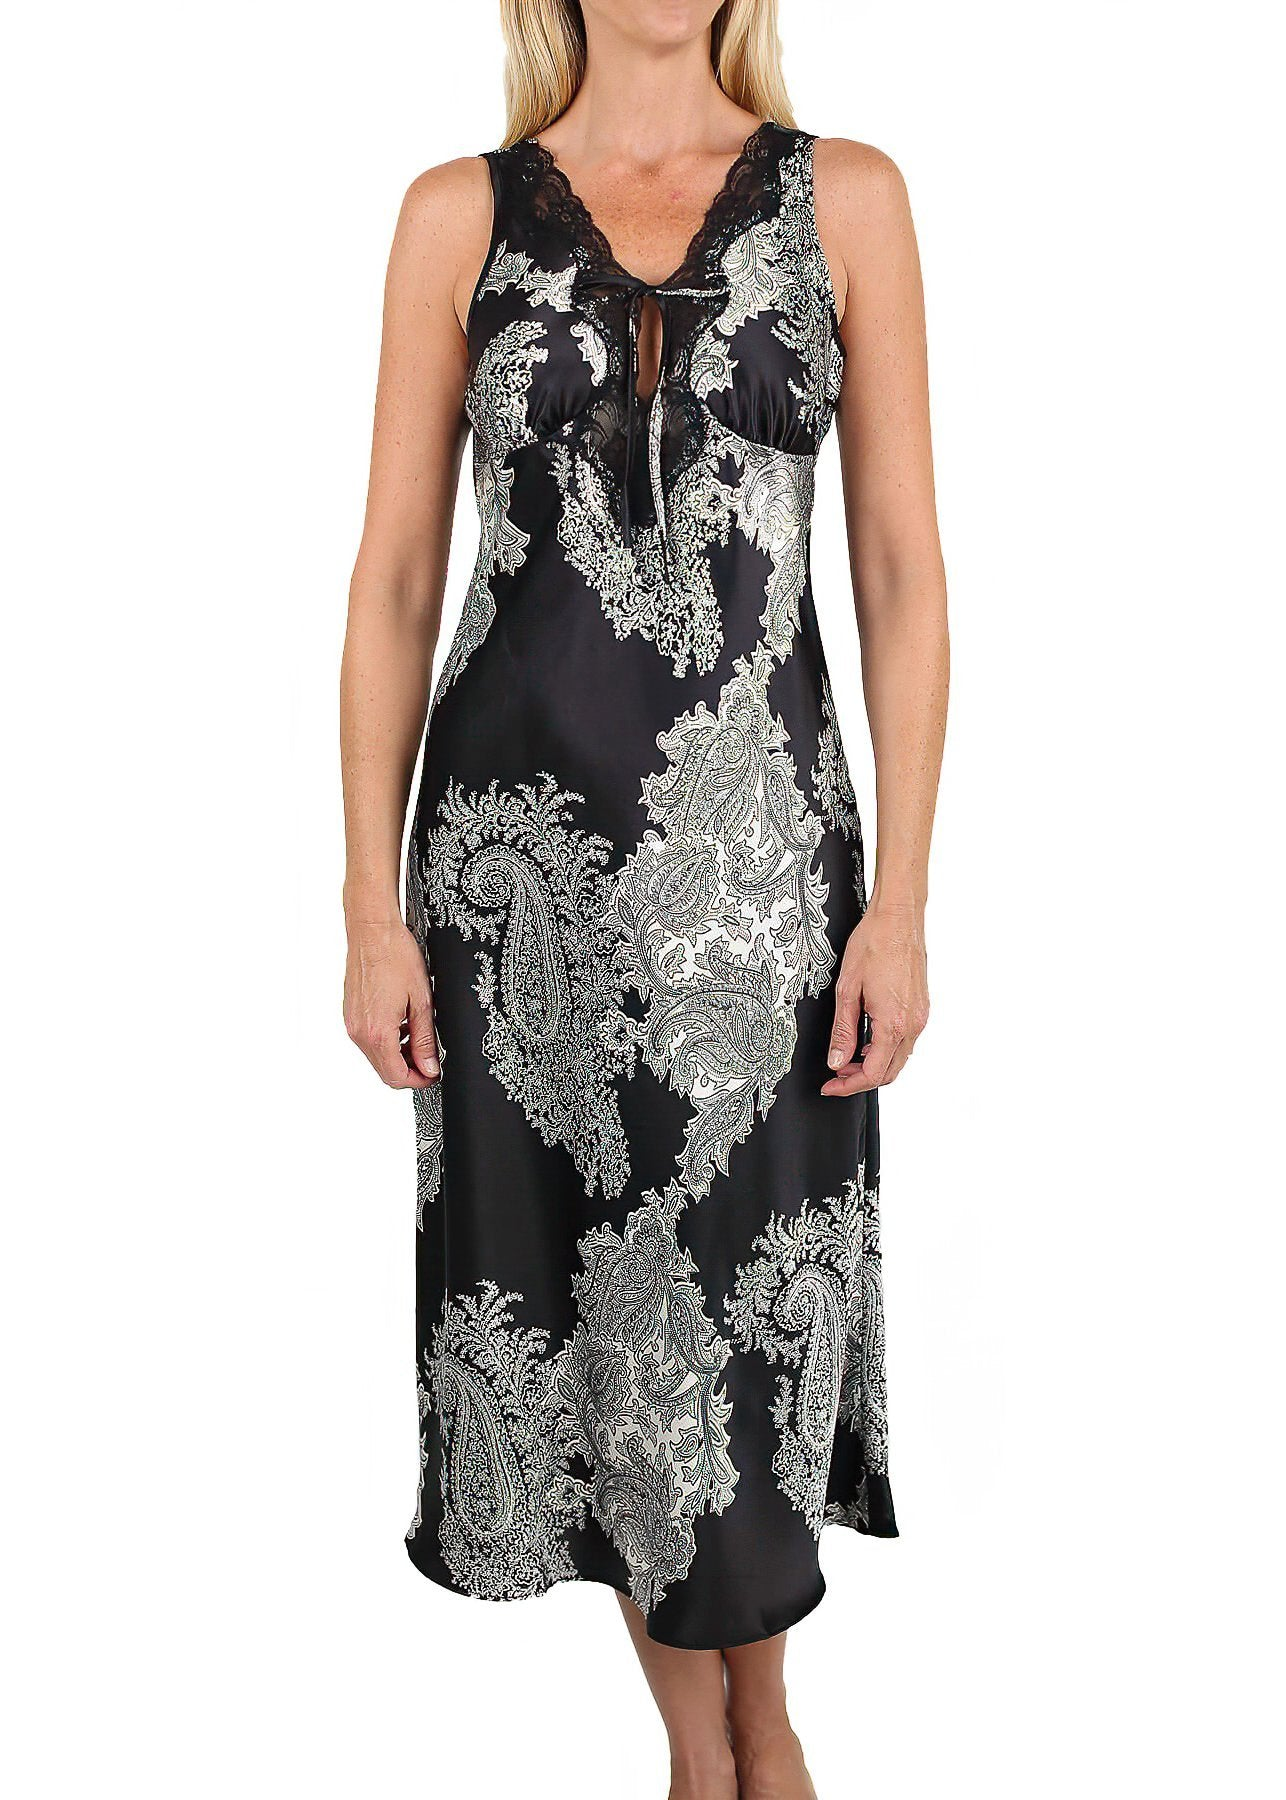 Raeanna Black Print Nightgown #30595